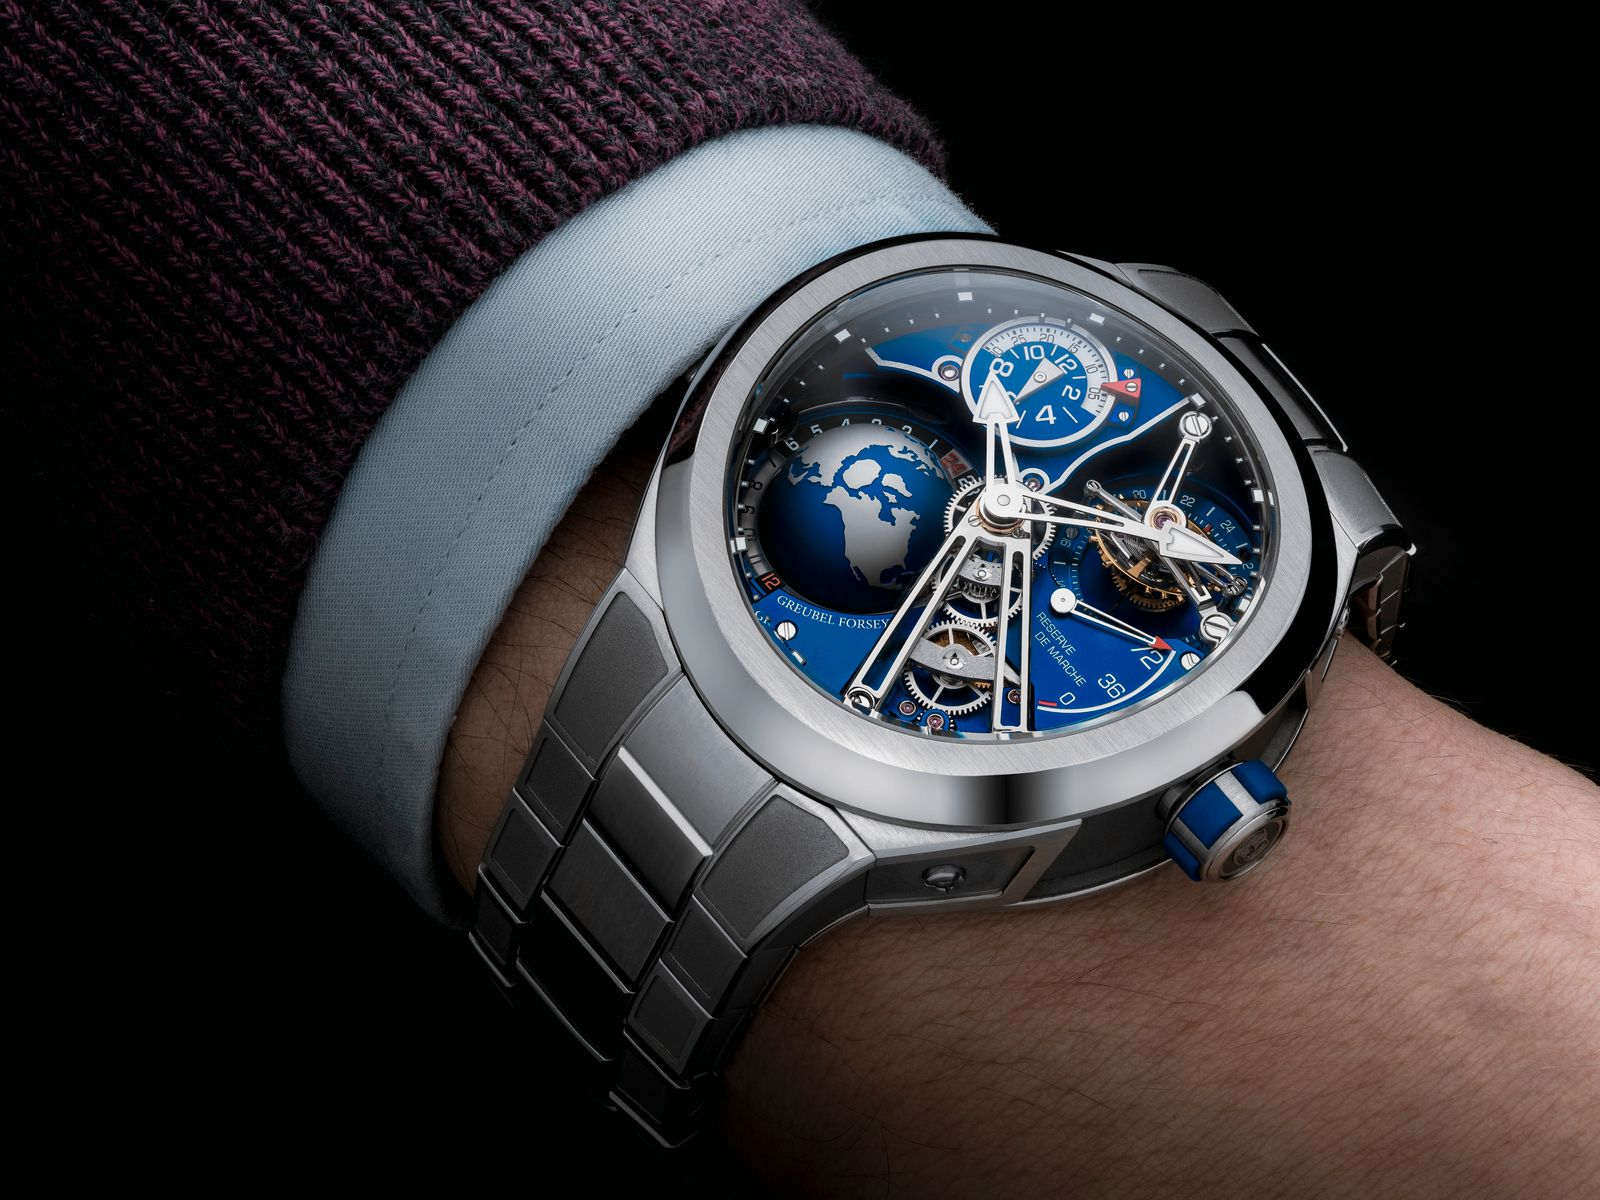 SIHH | Watches and Wonders | Greubel Forsey GMT Sport